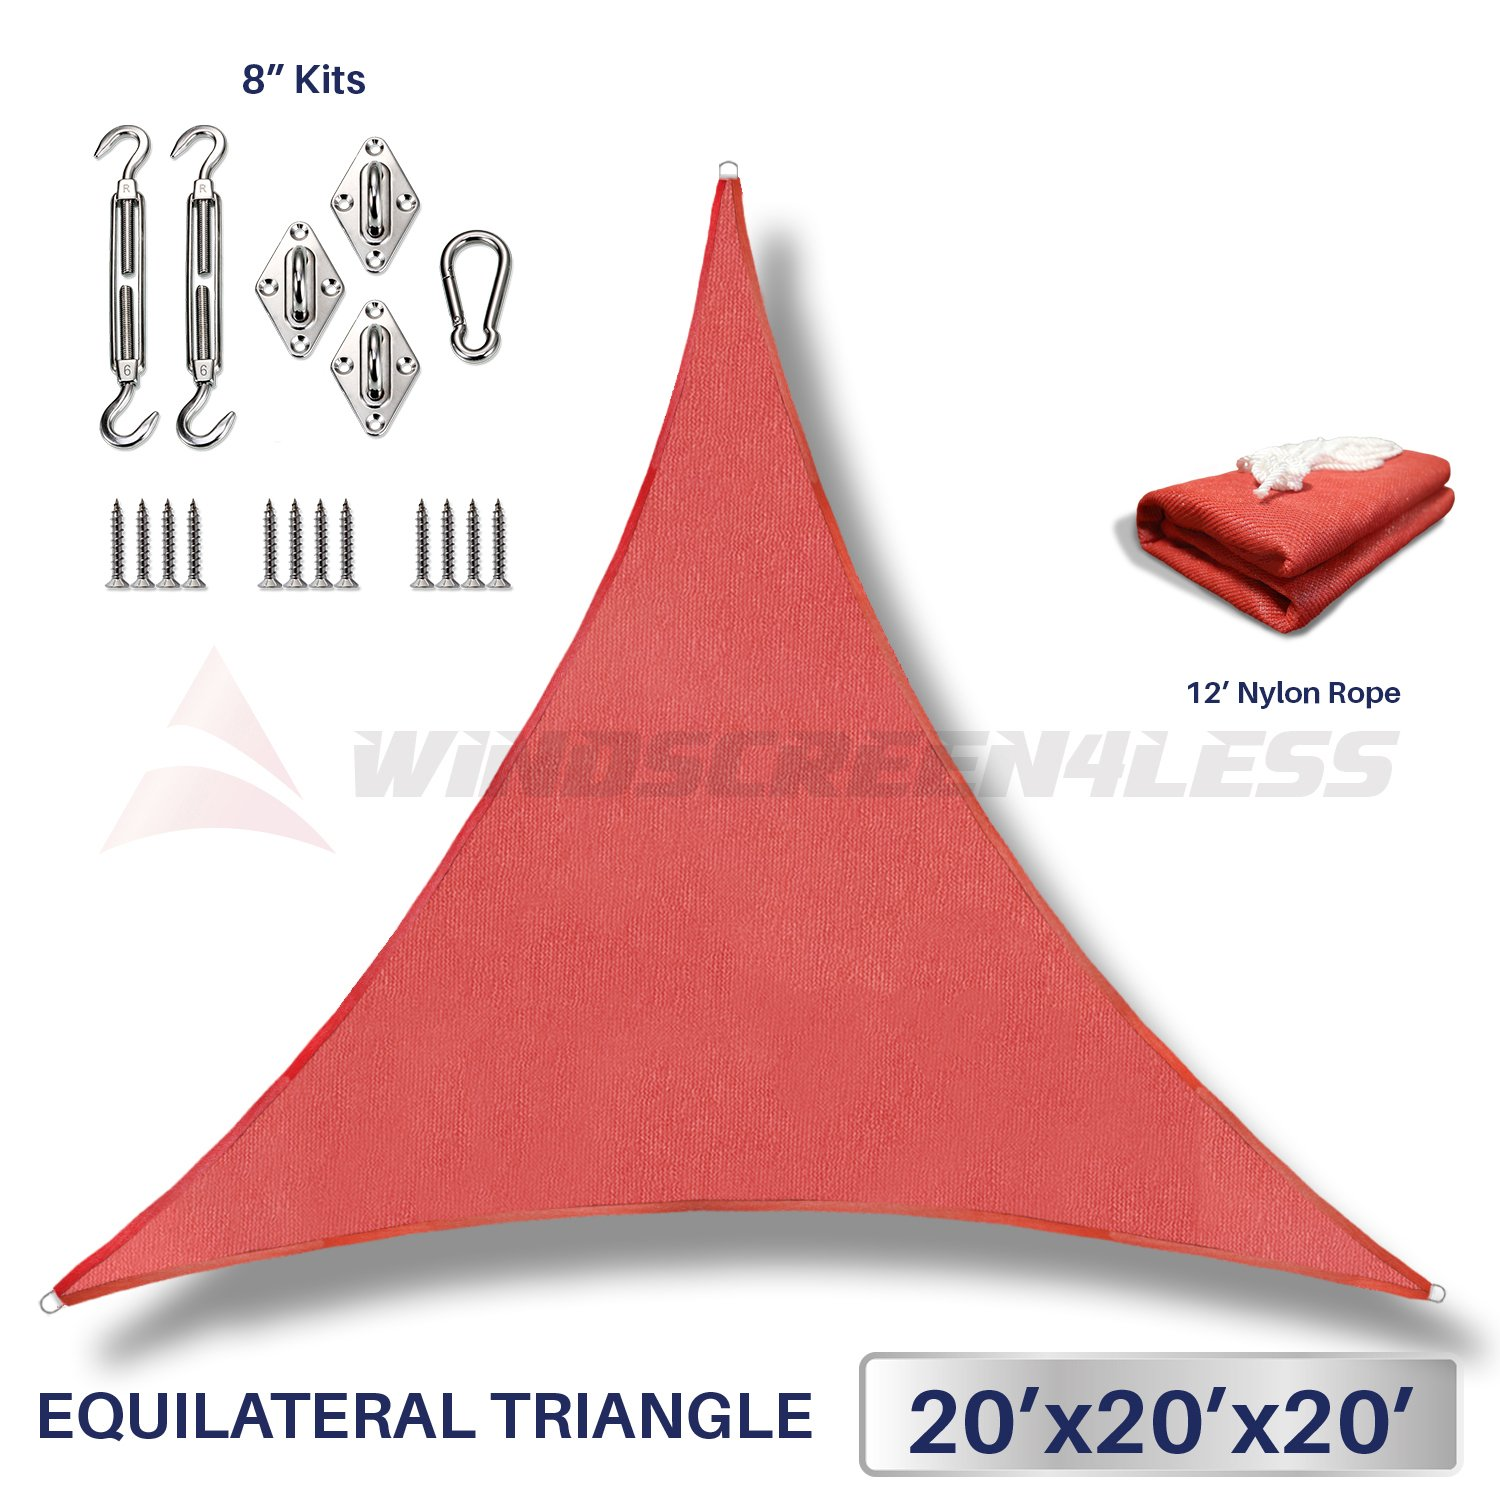 Windscreen4less 20 x 20 x 20 Equilateral Triangle Sun Shade Sail with 8 inch Hardware Kit – Rust Red Durable UV Shelter Canopy for Patio Outdoor Backyard – Custom